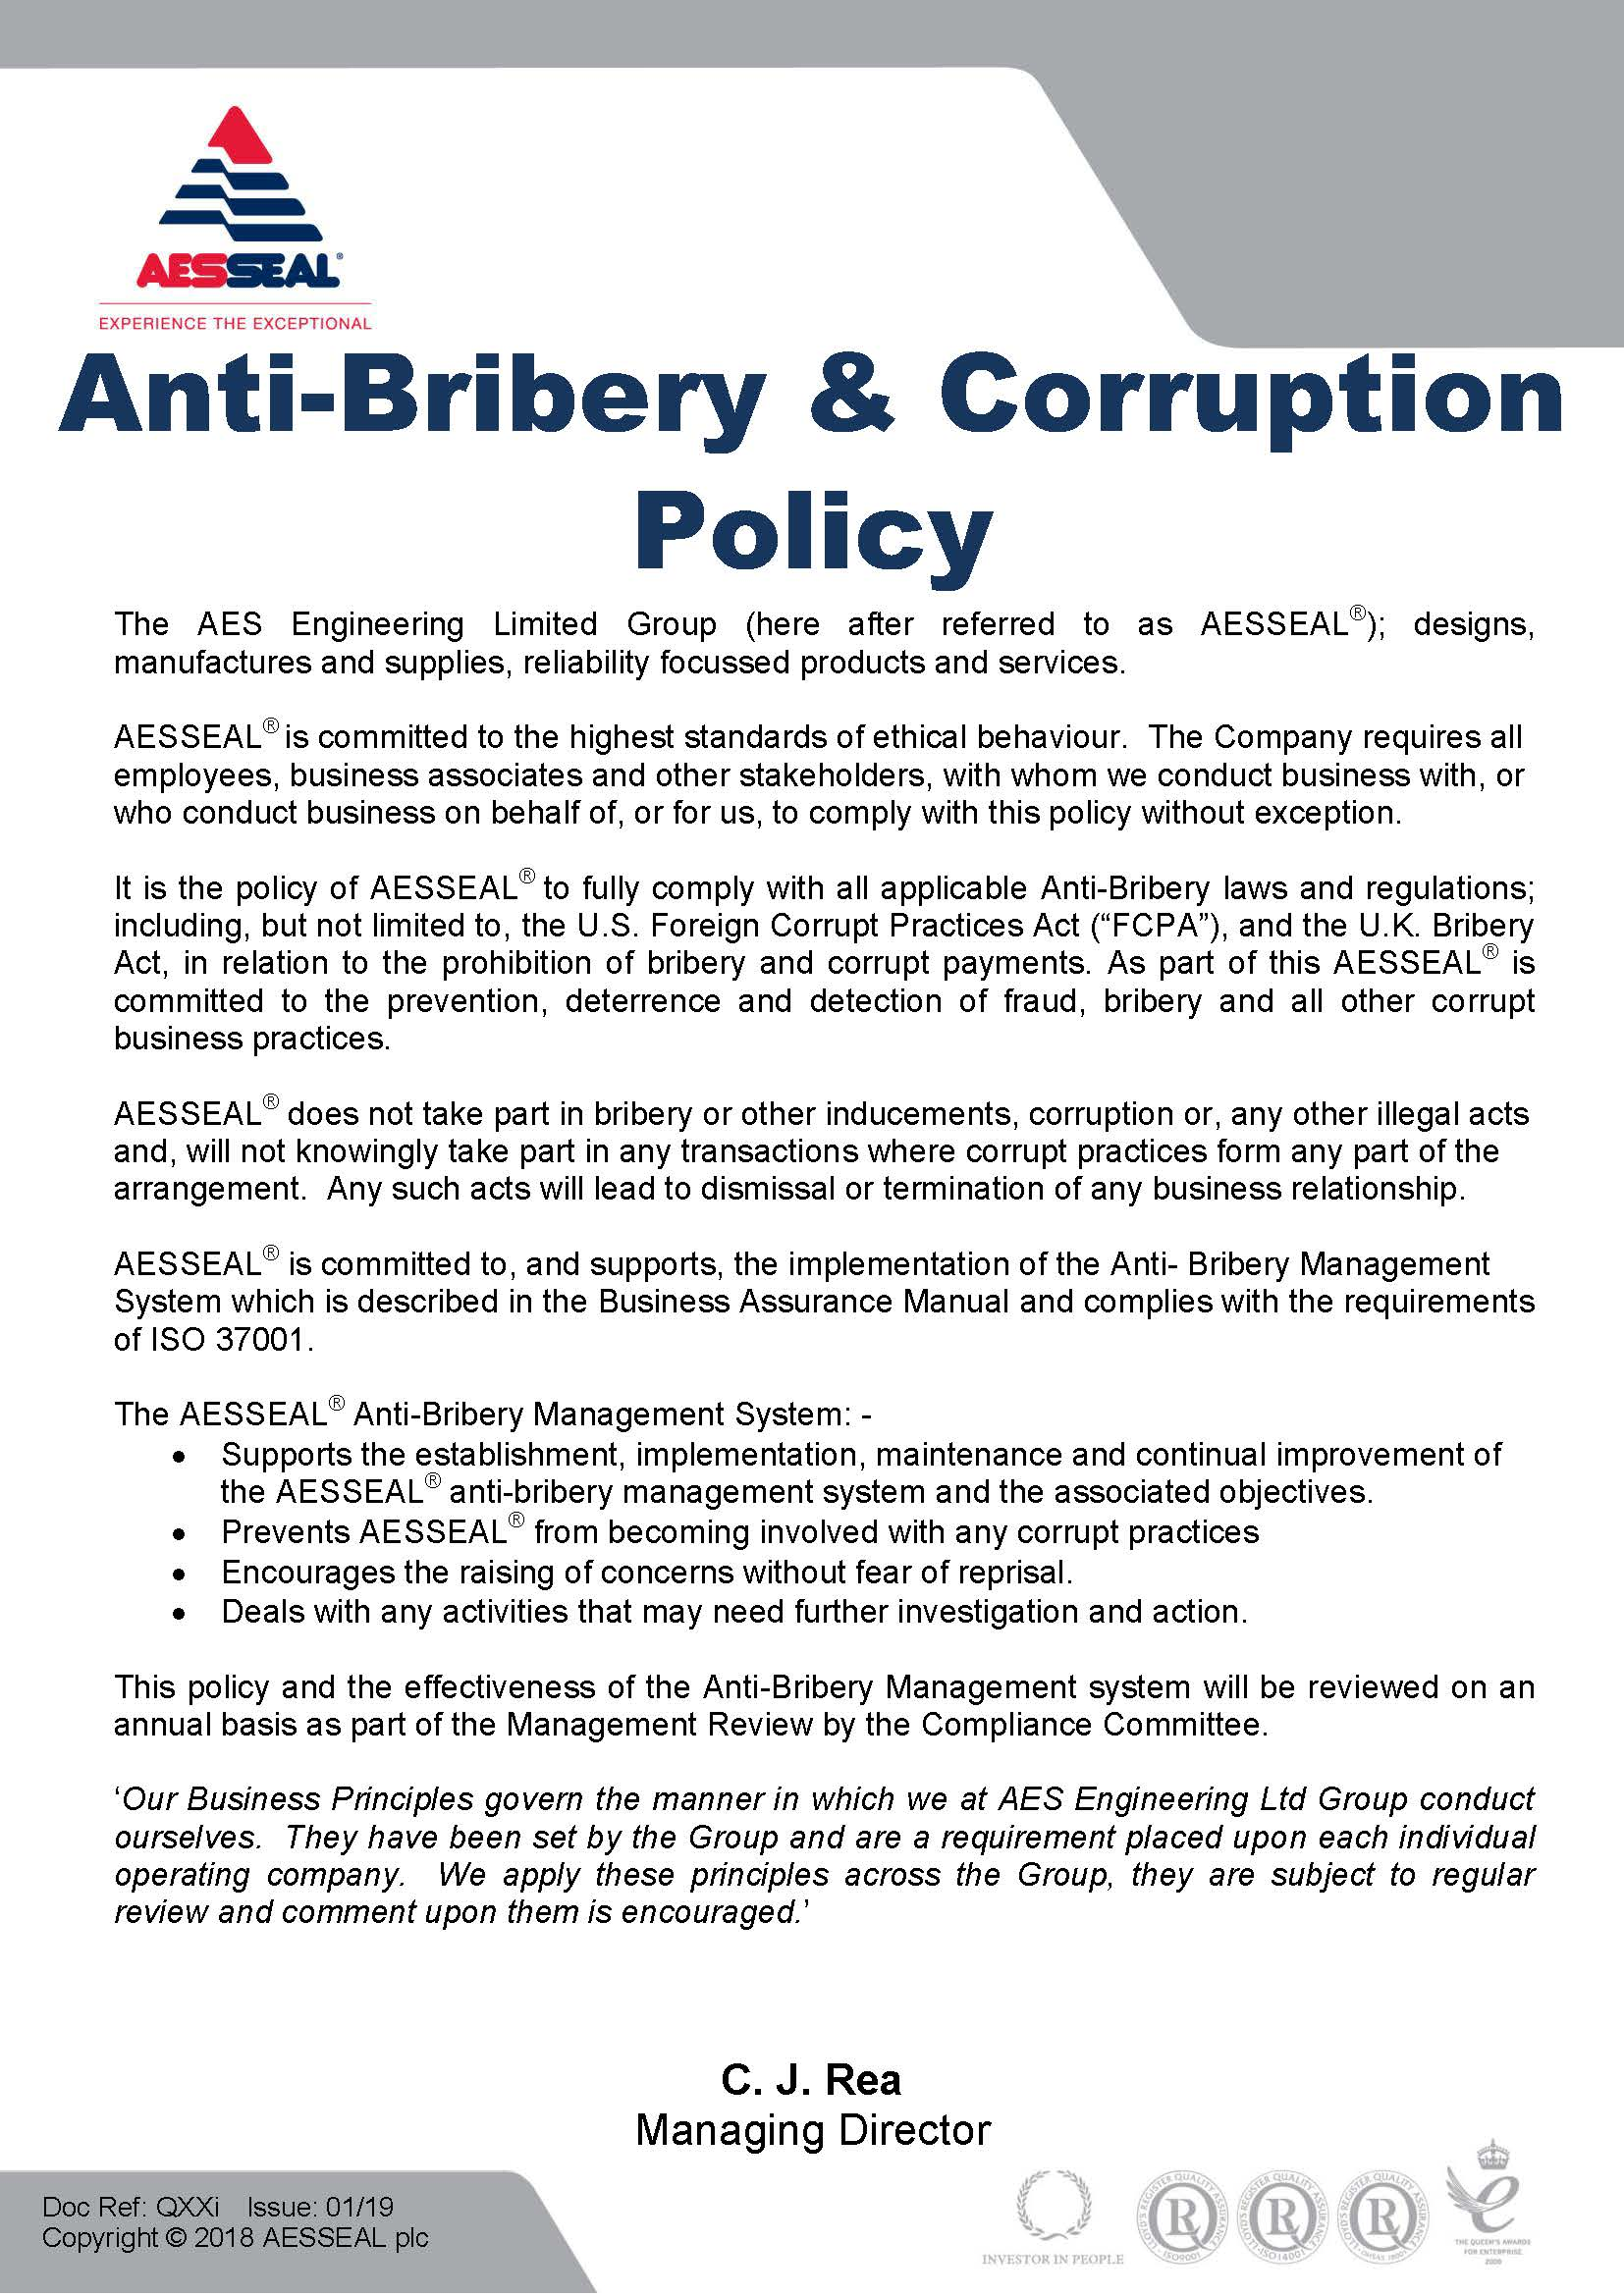 Anti-Bribery and Corruption Policy